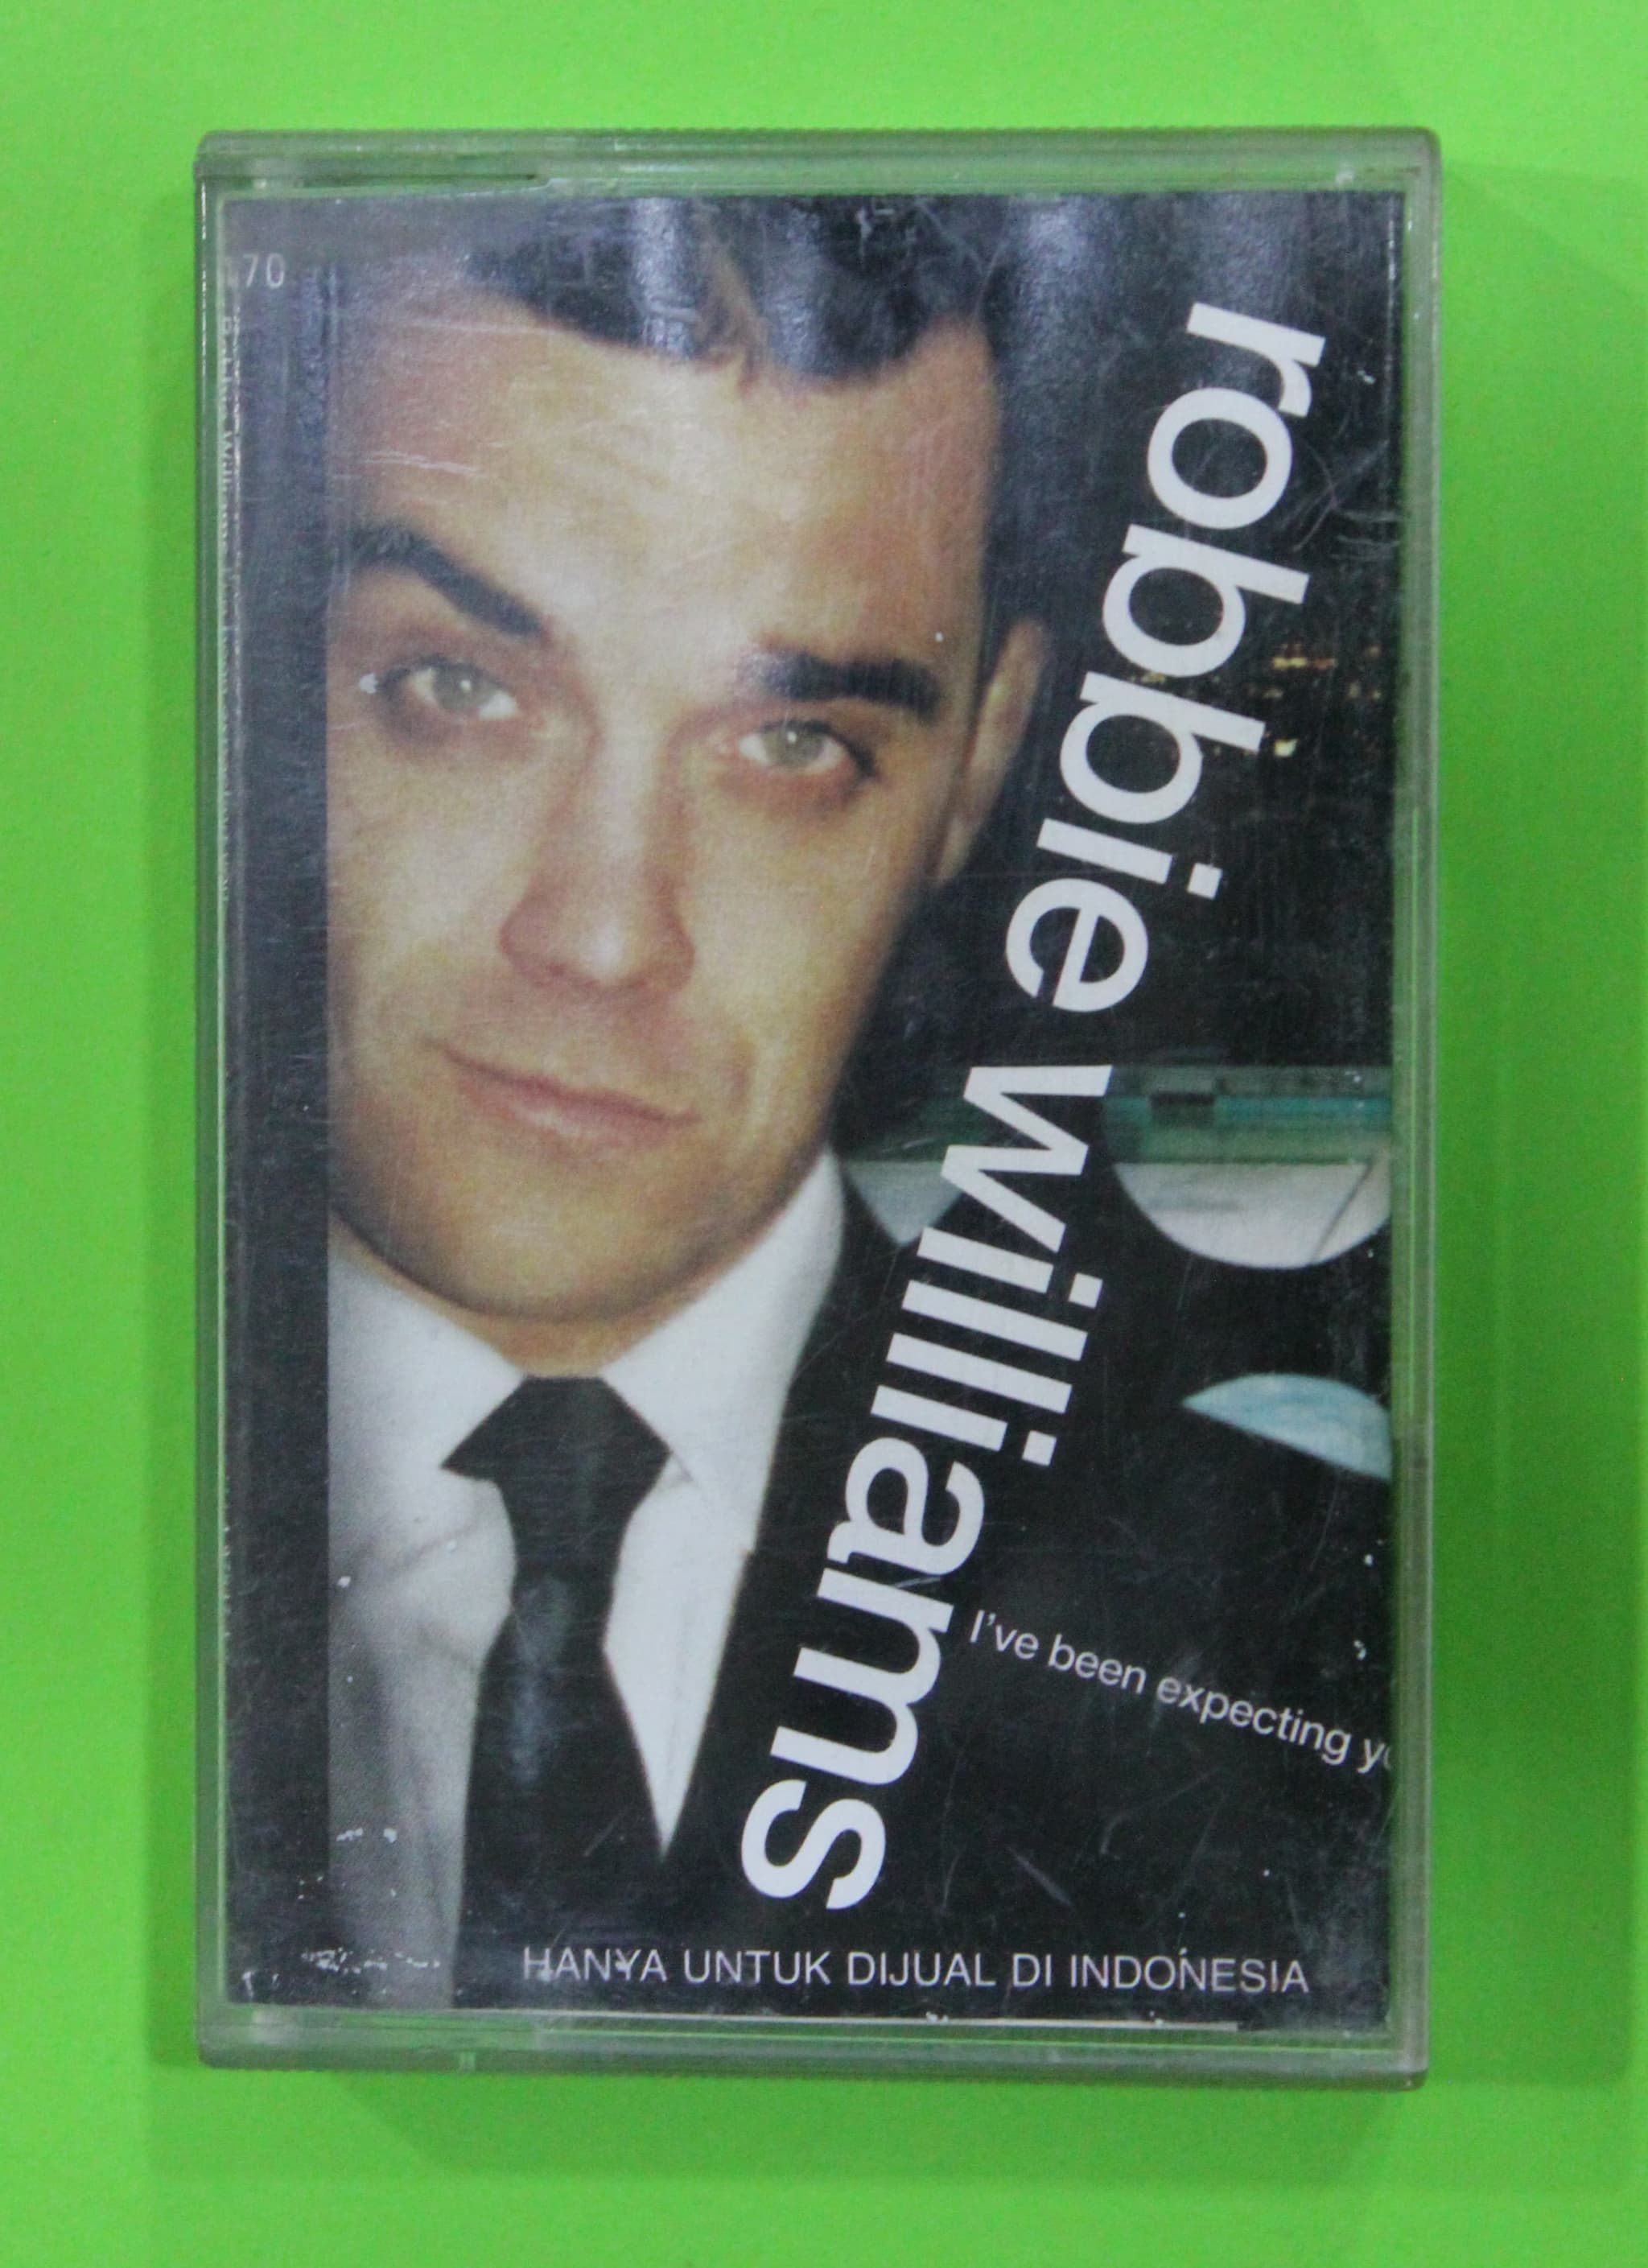 Jual Kaset Tape Pita Antik Lagu Robbie Williams -KASET ANTIK ... 5ff6fdf334